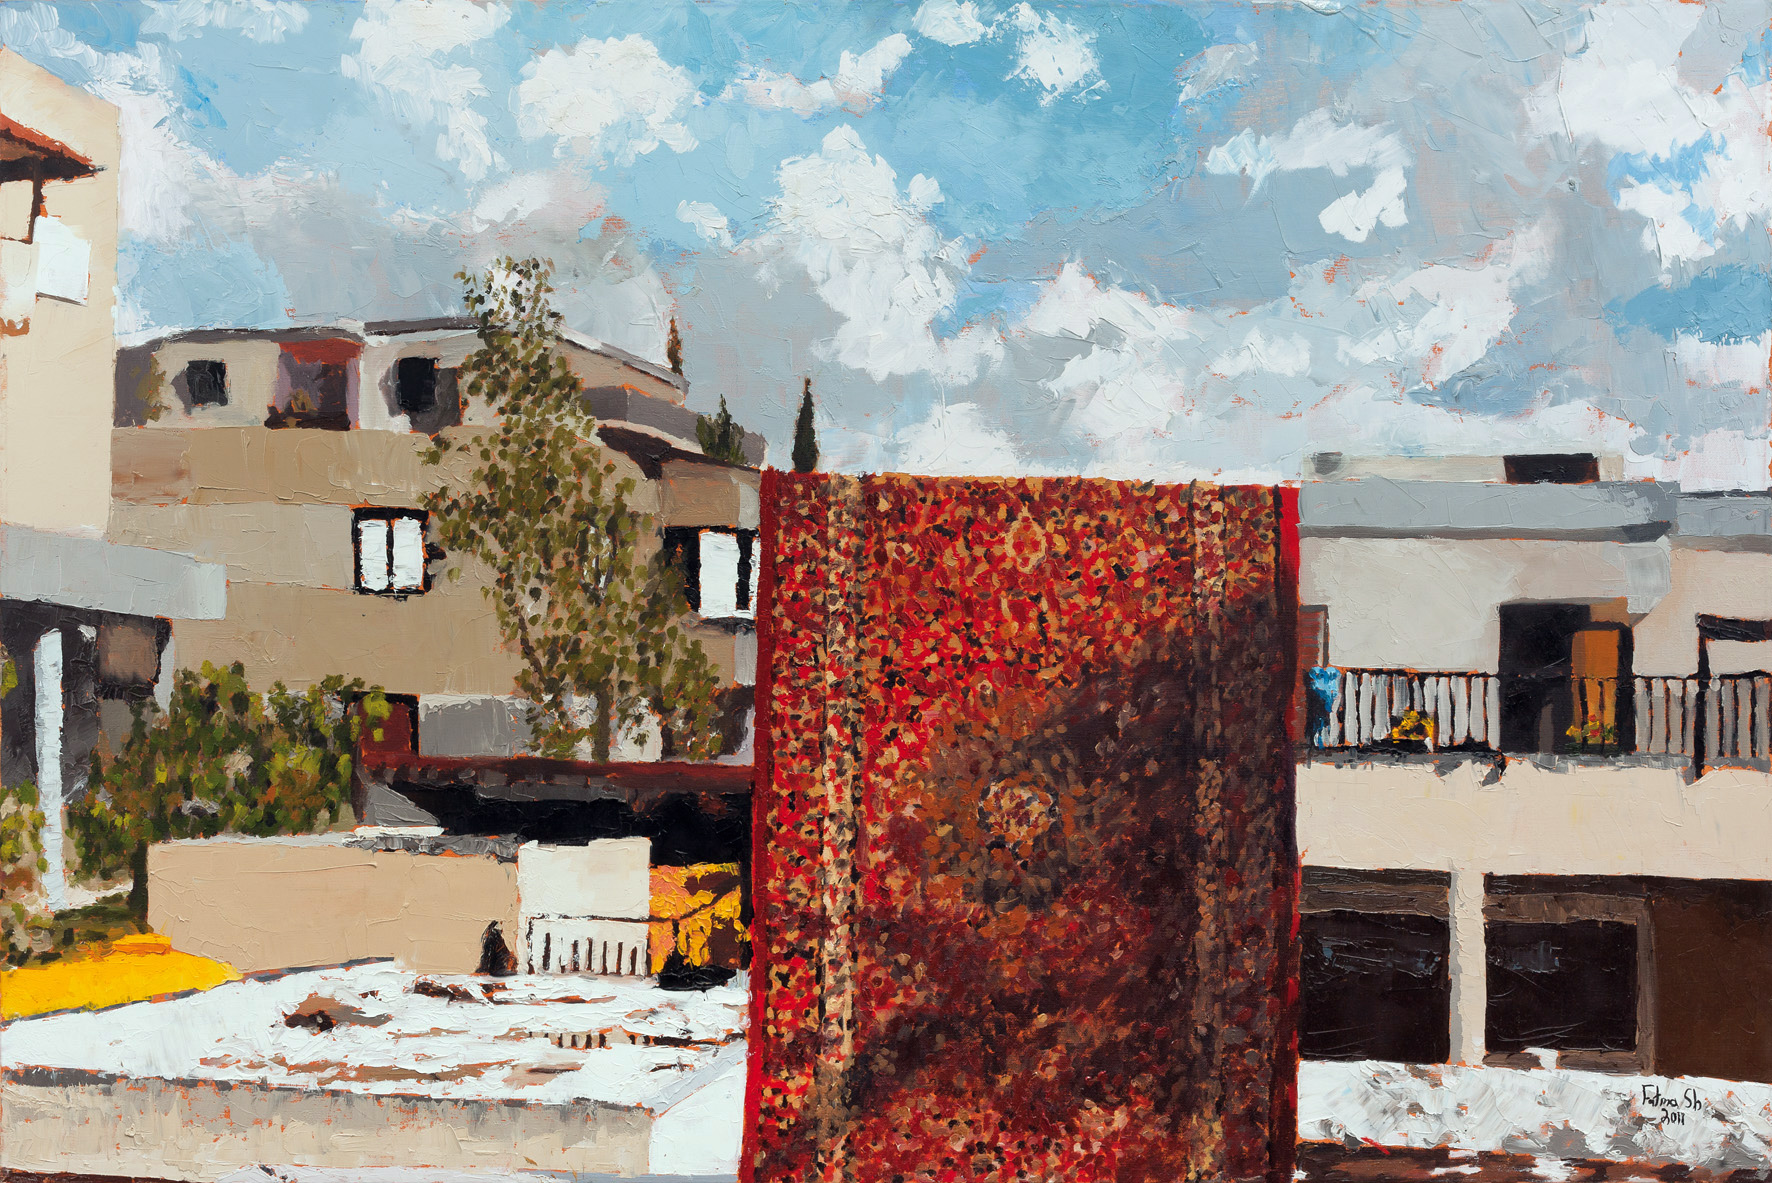 Hanging Carpet, 2011, oil on canvas, 80x100 cm, private collection, USA